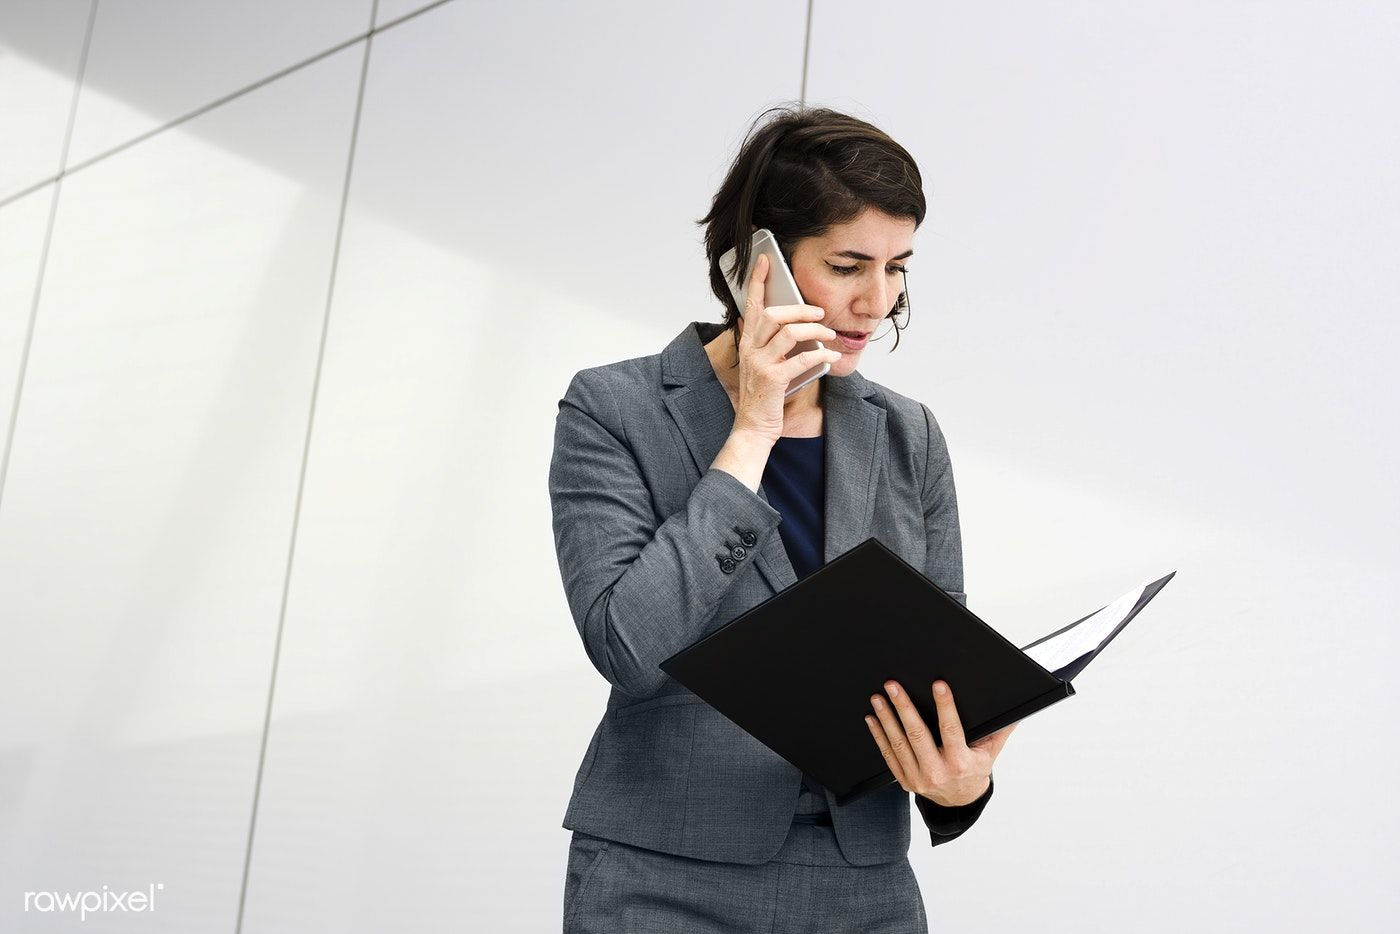 Download premium image of businesswoman talking on a phone